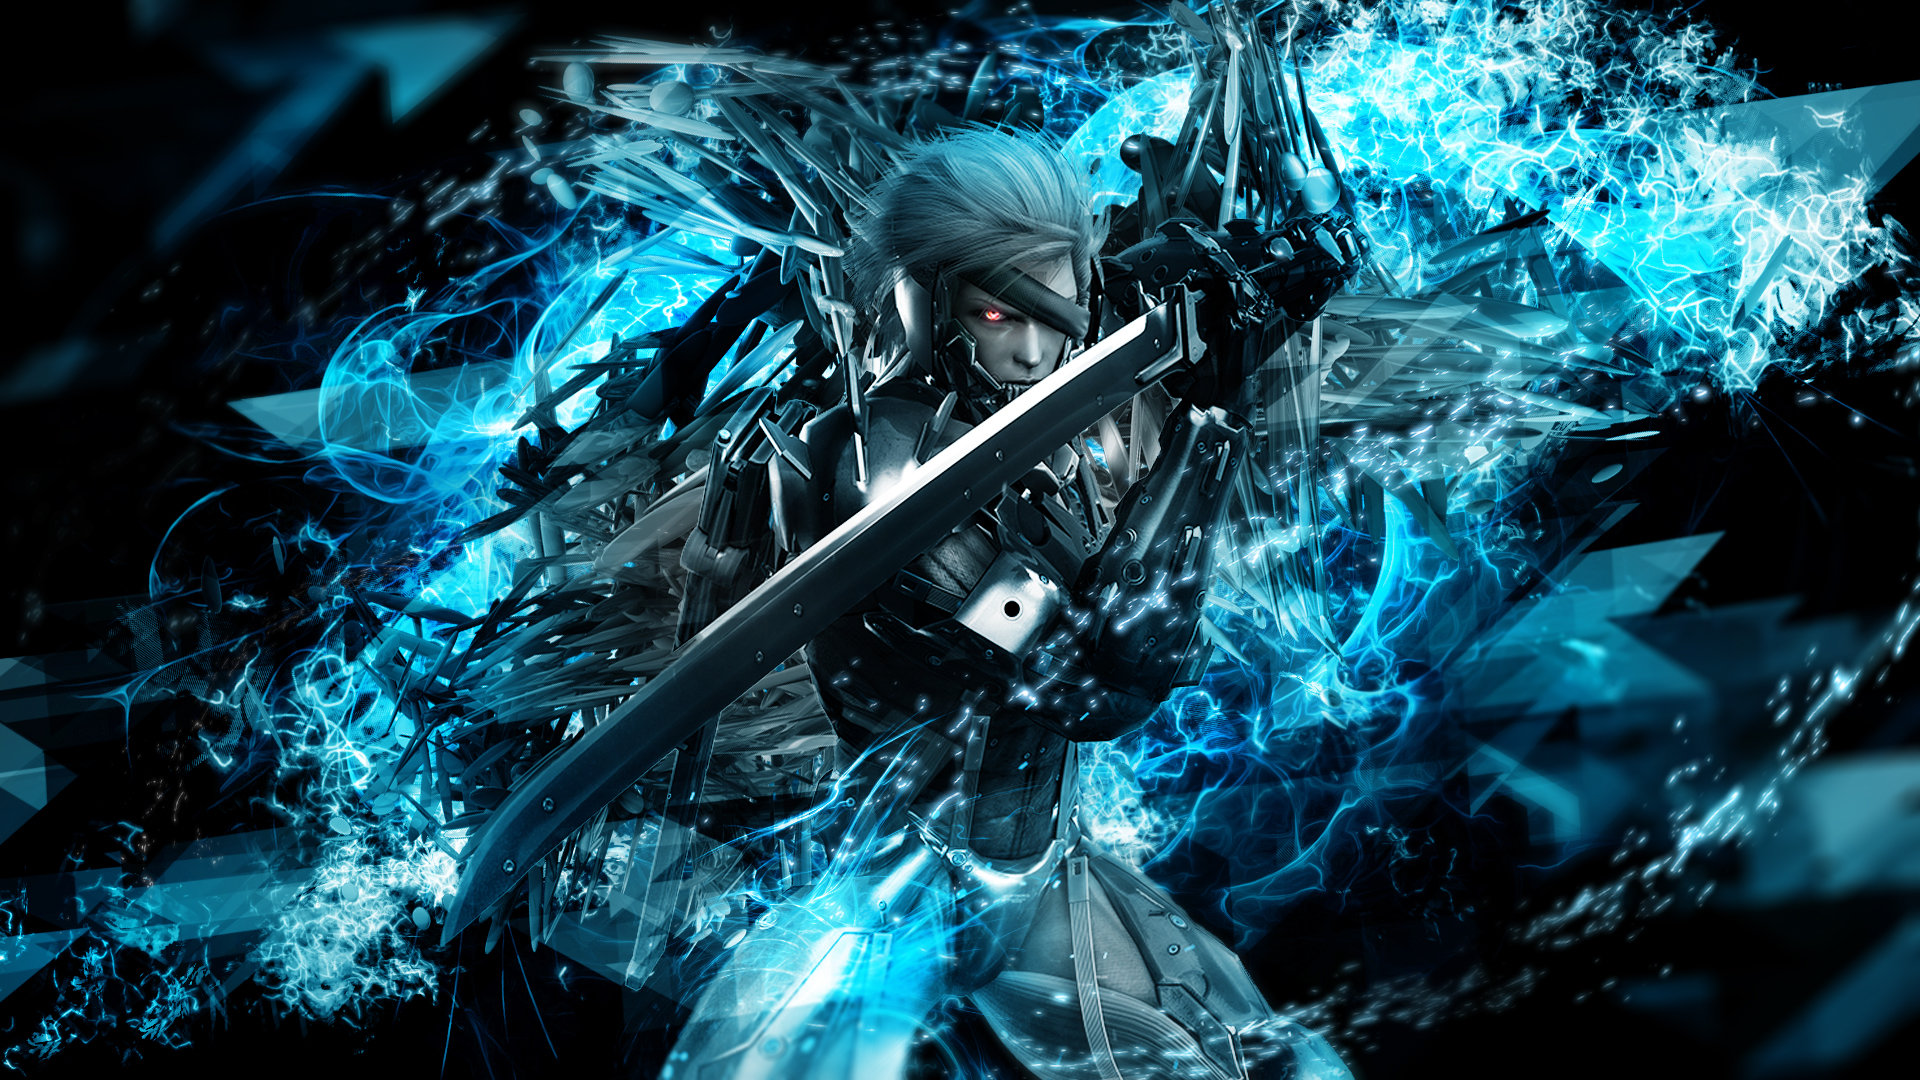 the 10 most amazing metal gear rising hd wallpapers